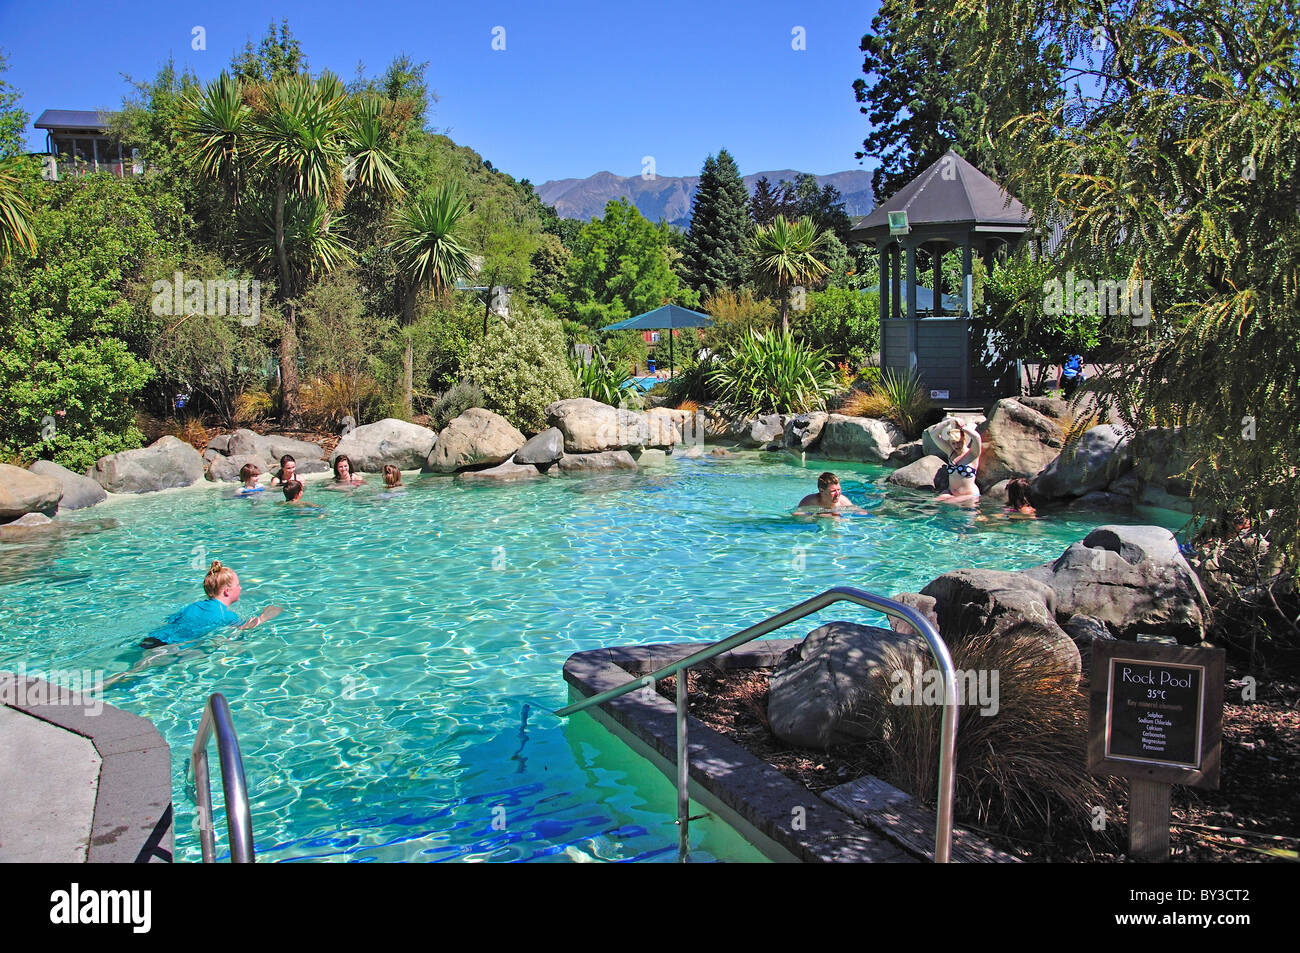 Hot Rock Pools At Hanmer Springs Thermal Pools Spa Hanmer Springs